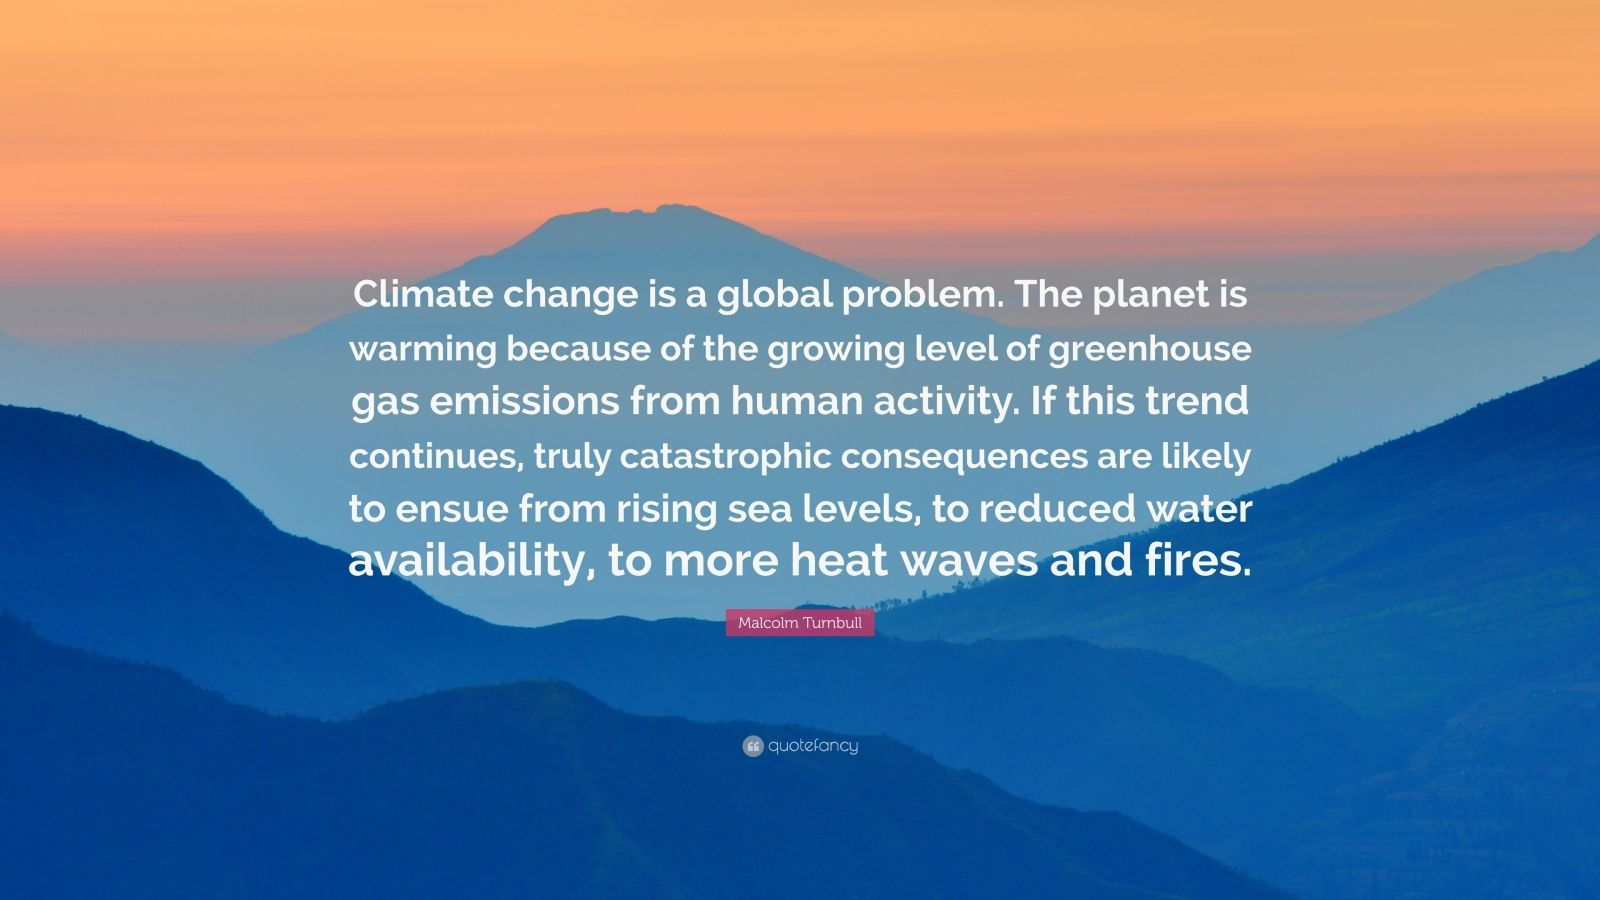 """Malcolm Turnbull Quote: """"Climate change is a global problem. The planet is warming because of the growing level of greenhouse gas emissions from human activity. If this trend continues, truly catastrophic consequences are likely to ensue from rising sea levels, to reduced water availability, to more heat waves and fires."""""""